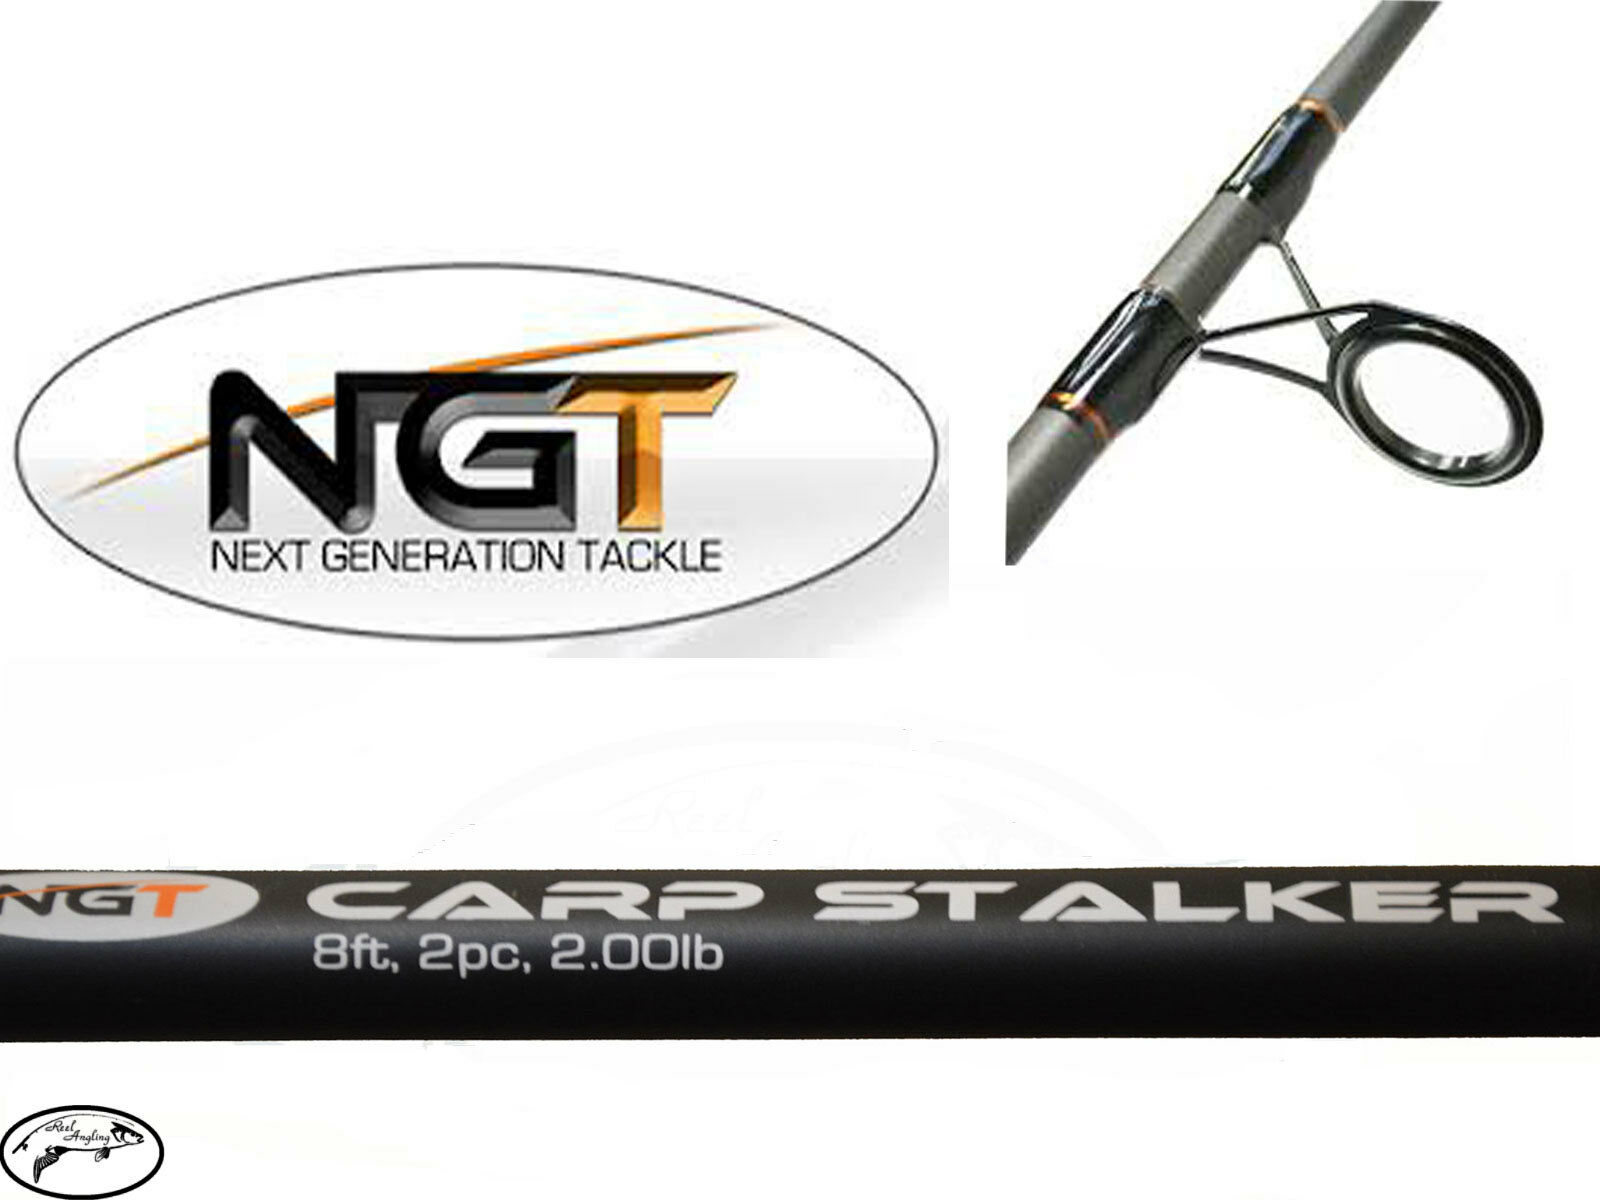 ngt fishing chair unusual chairs for sale uk 2 x carp stalker black 8ft 2pc stalking rod